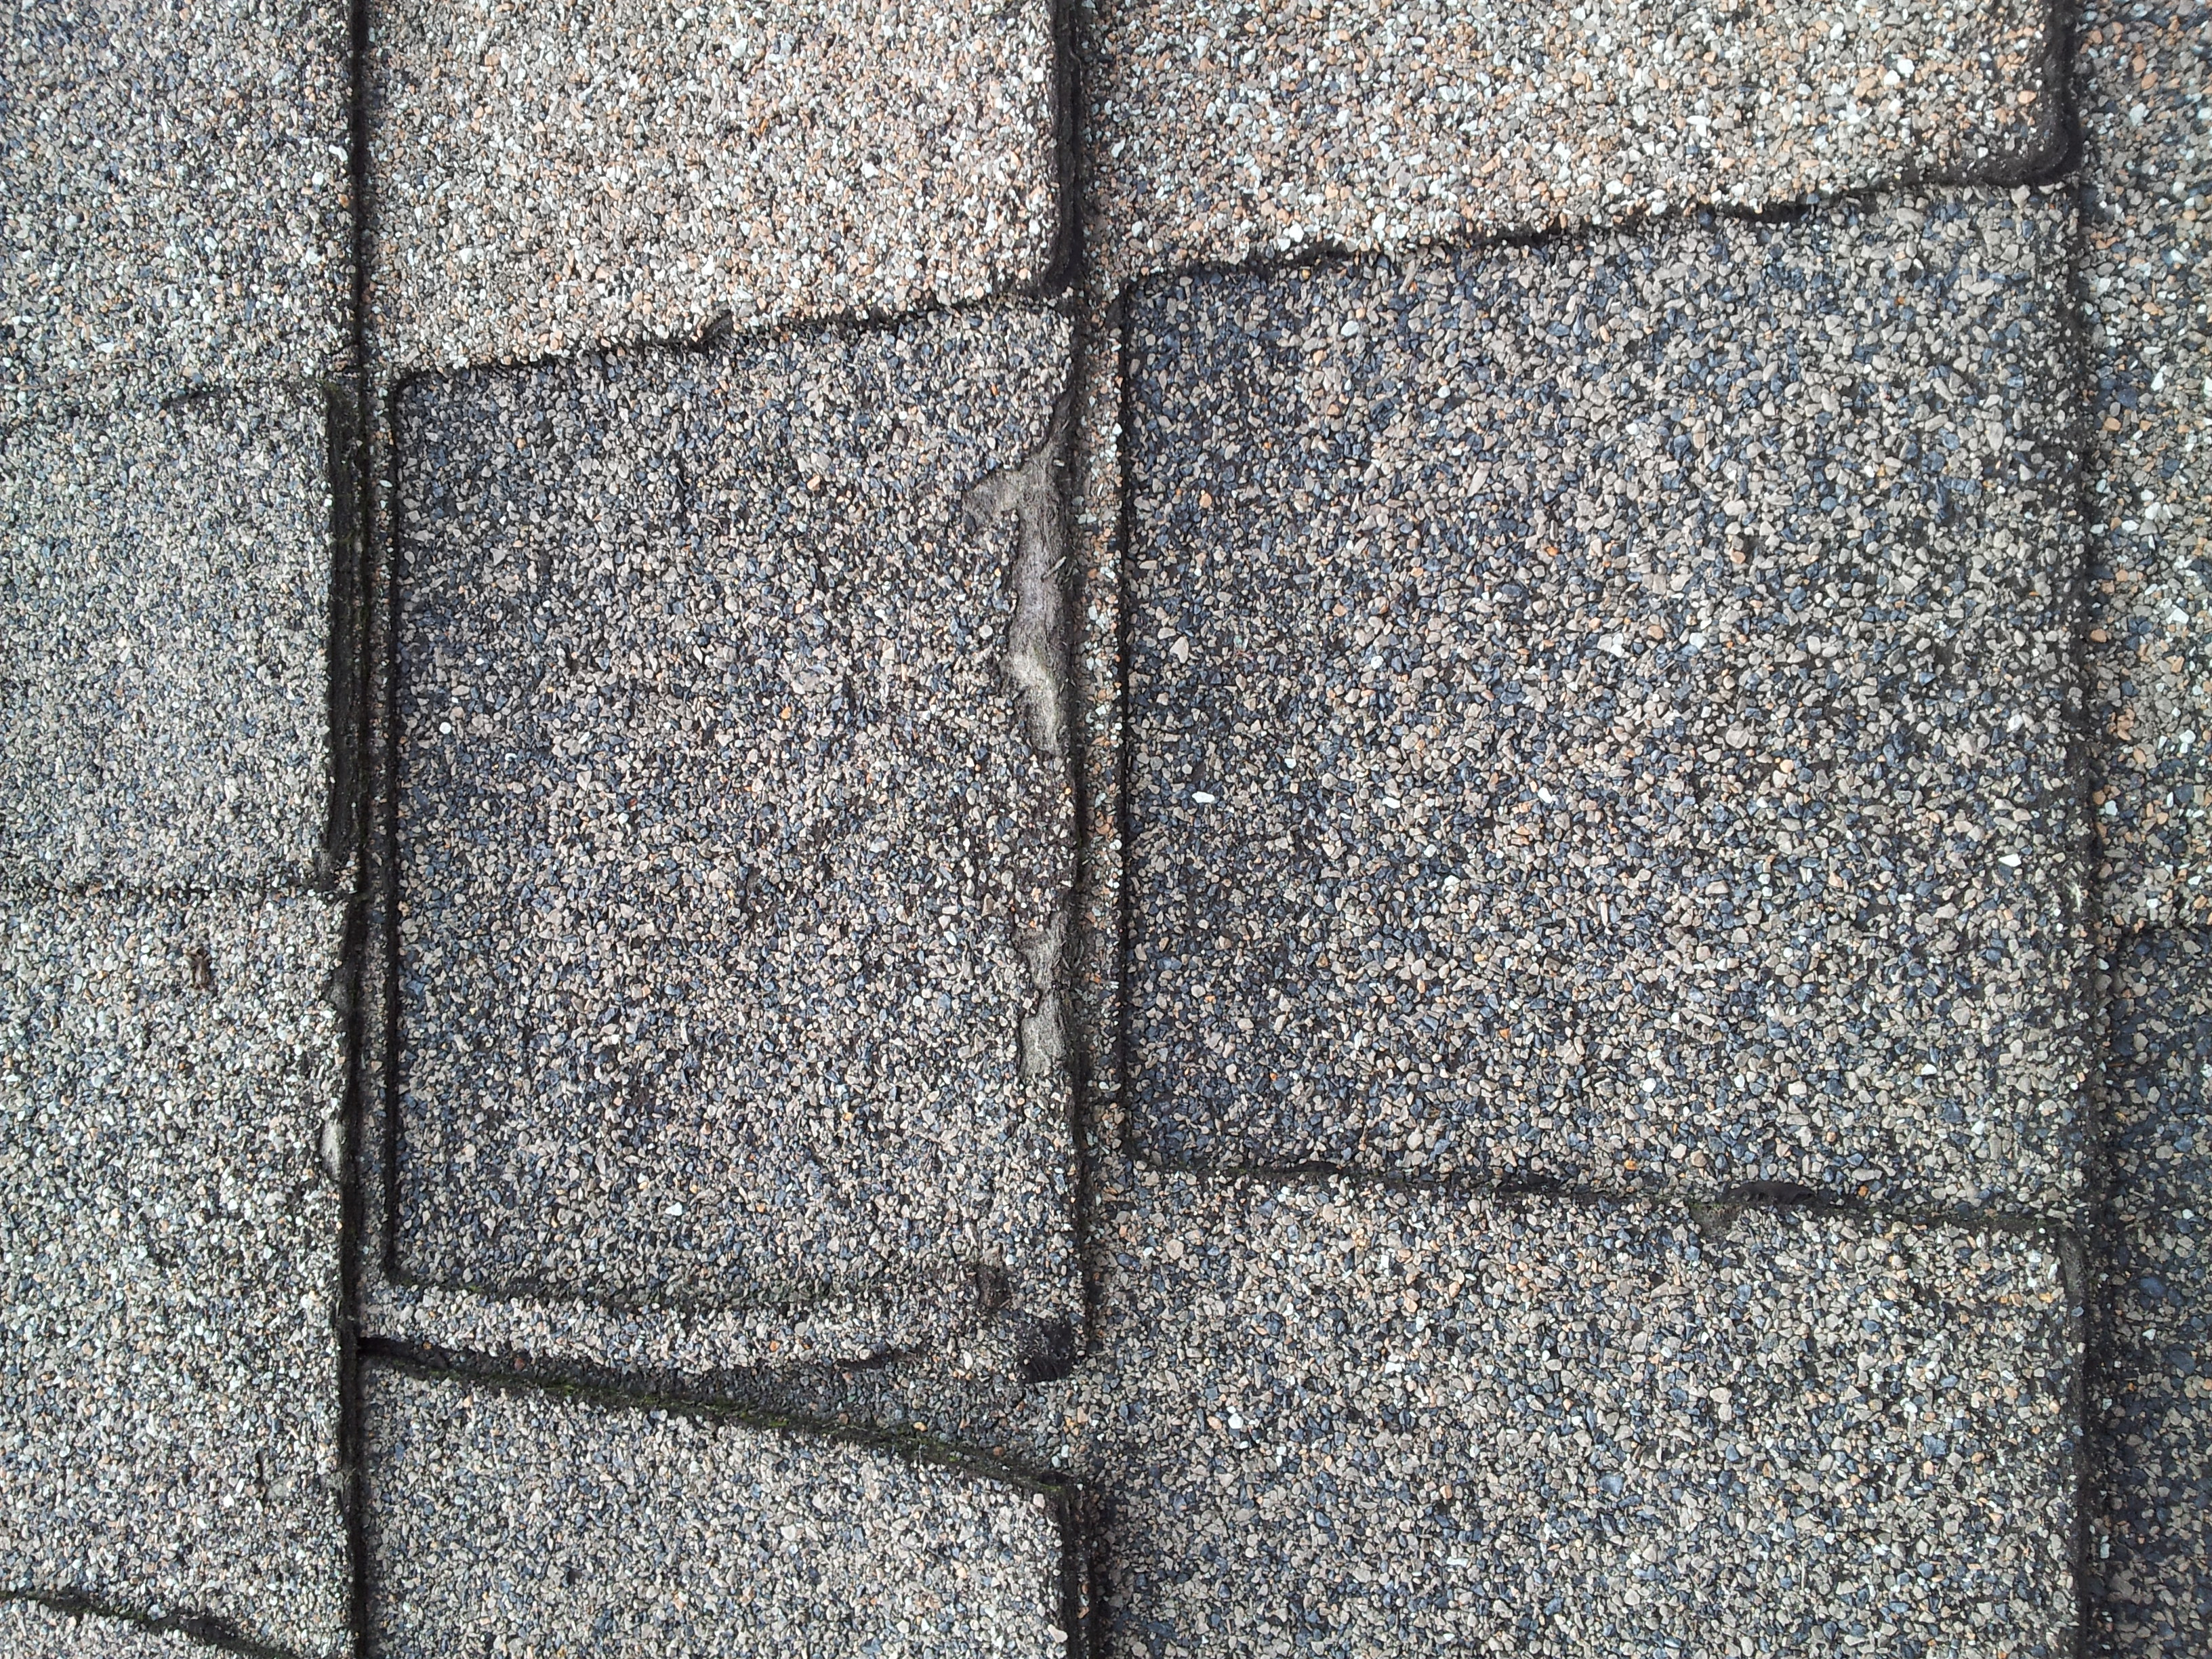 Crc Biltmore Shingles Iko Roof Complaints Problems